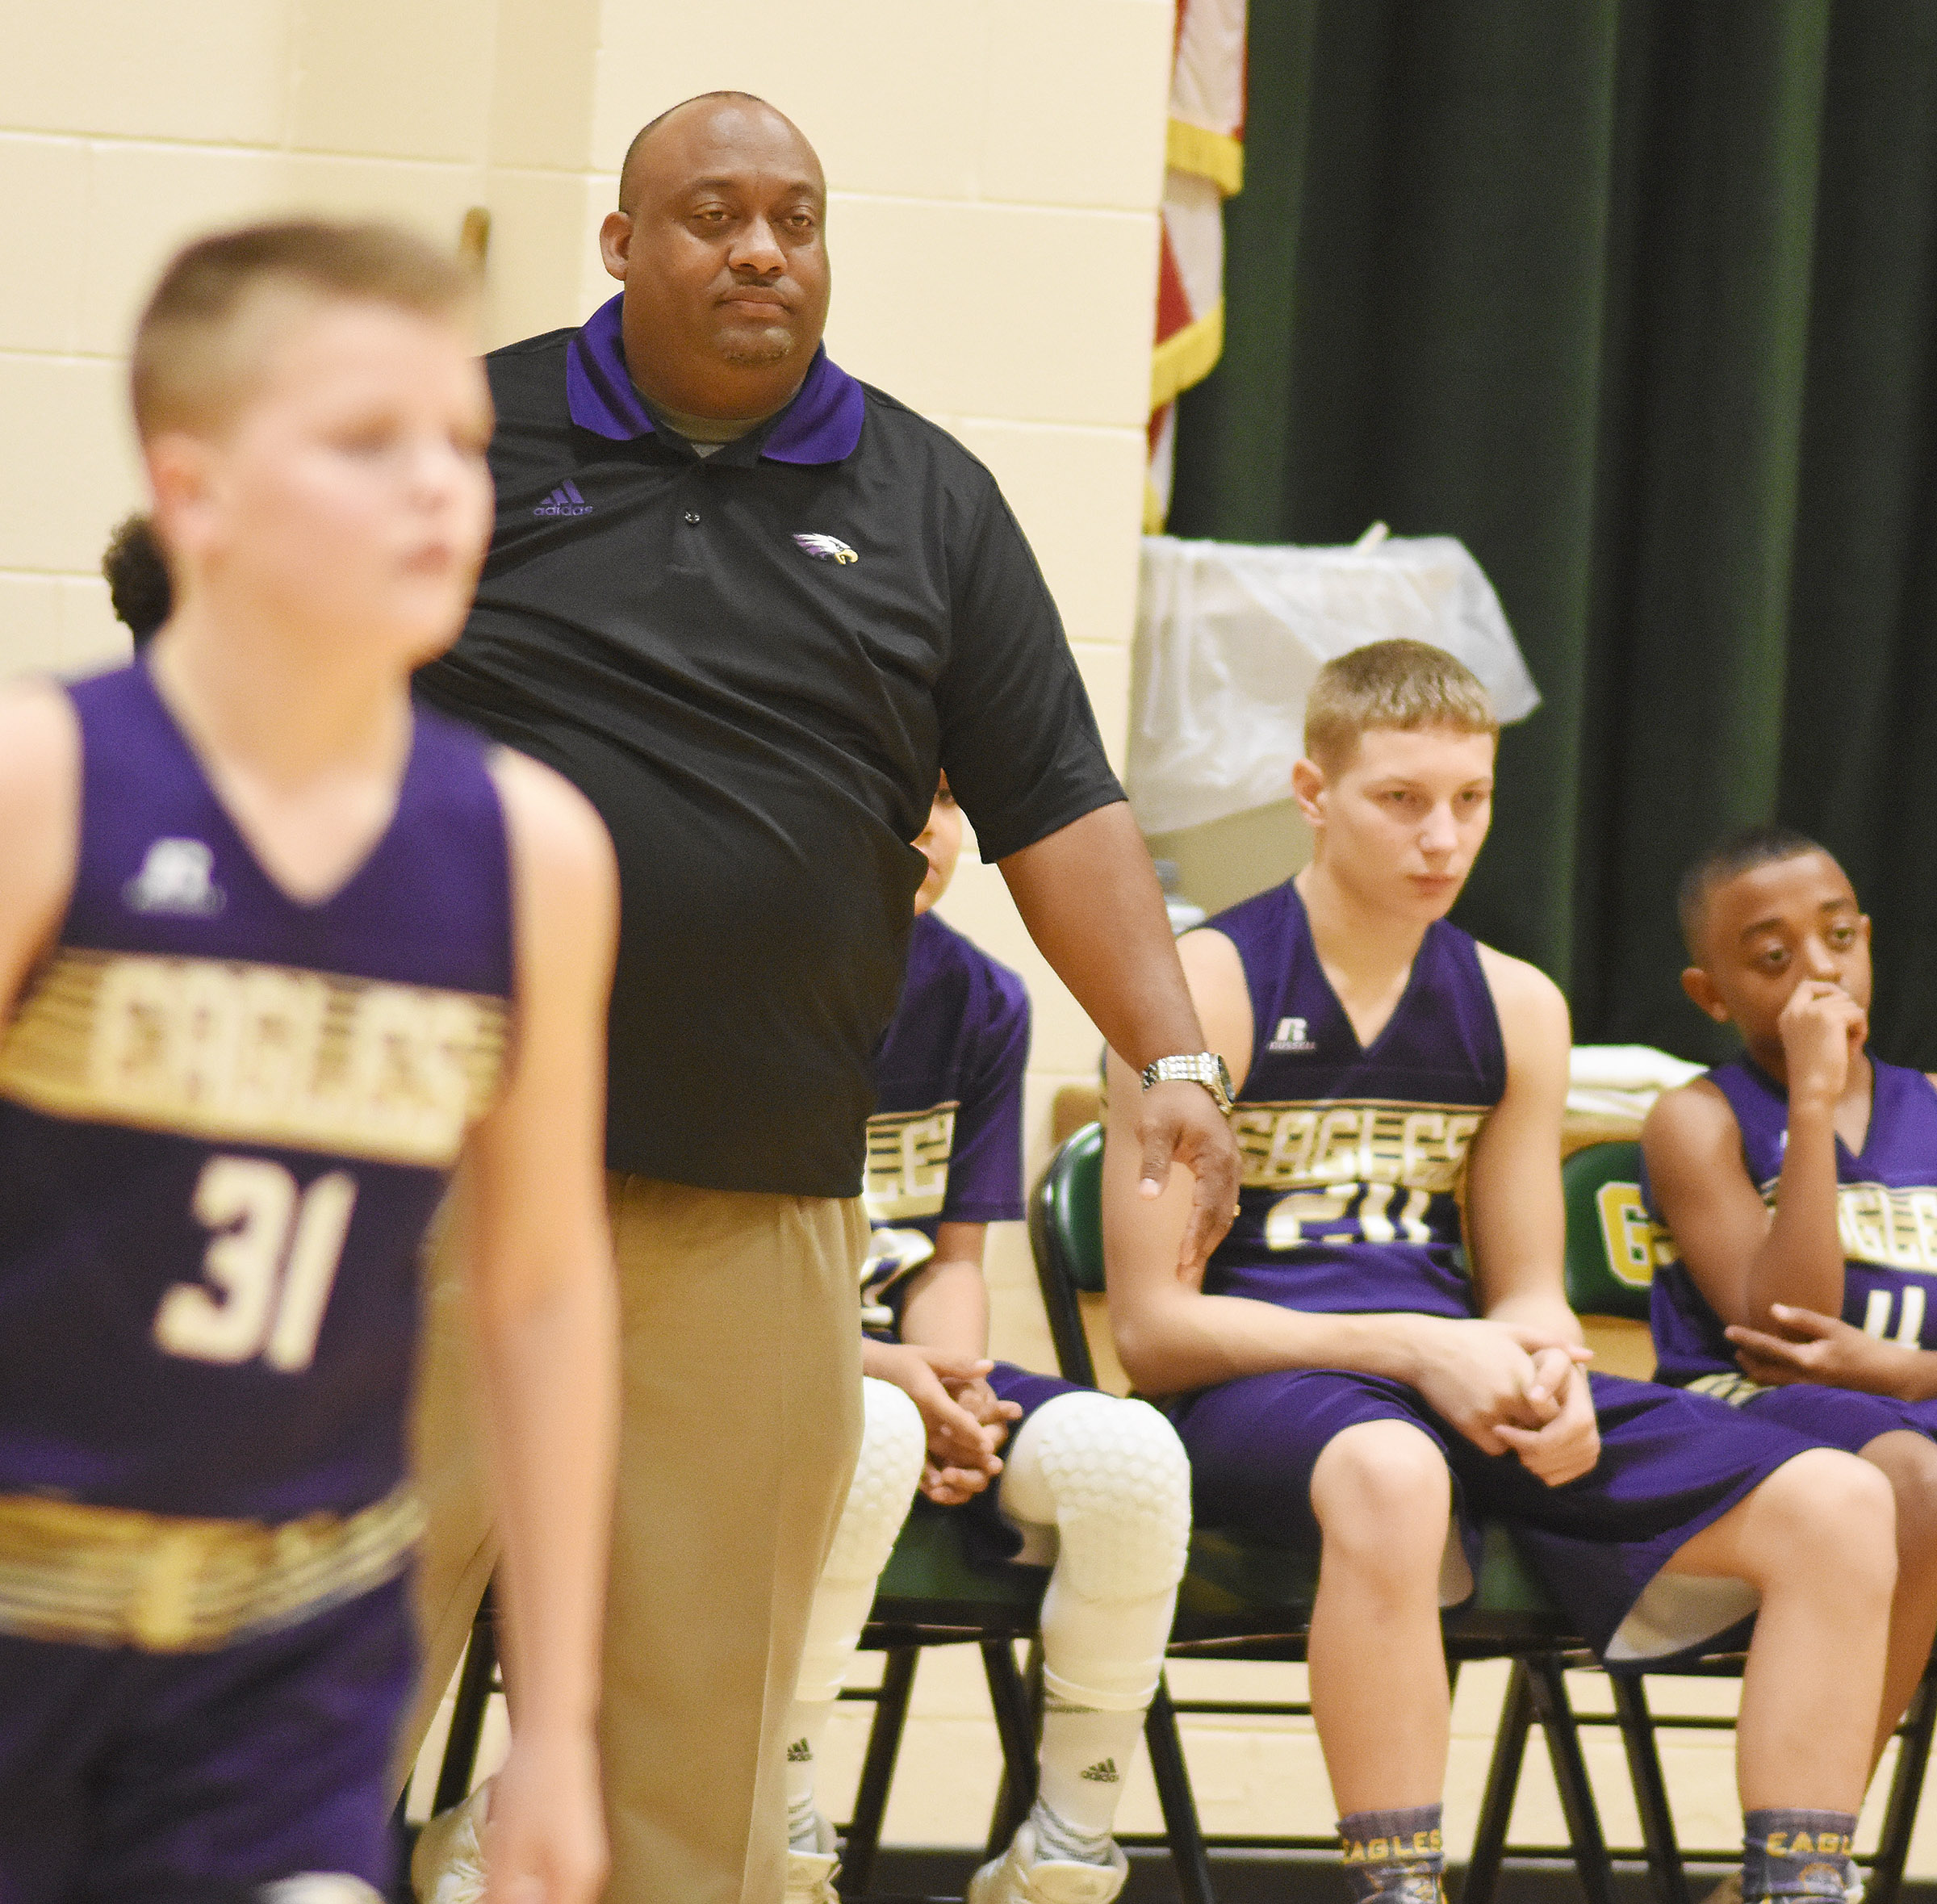 CMS boys' basketball coach Joseph Taylor watches his players.